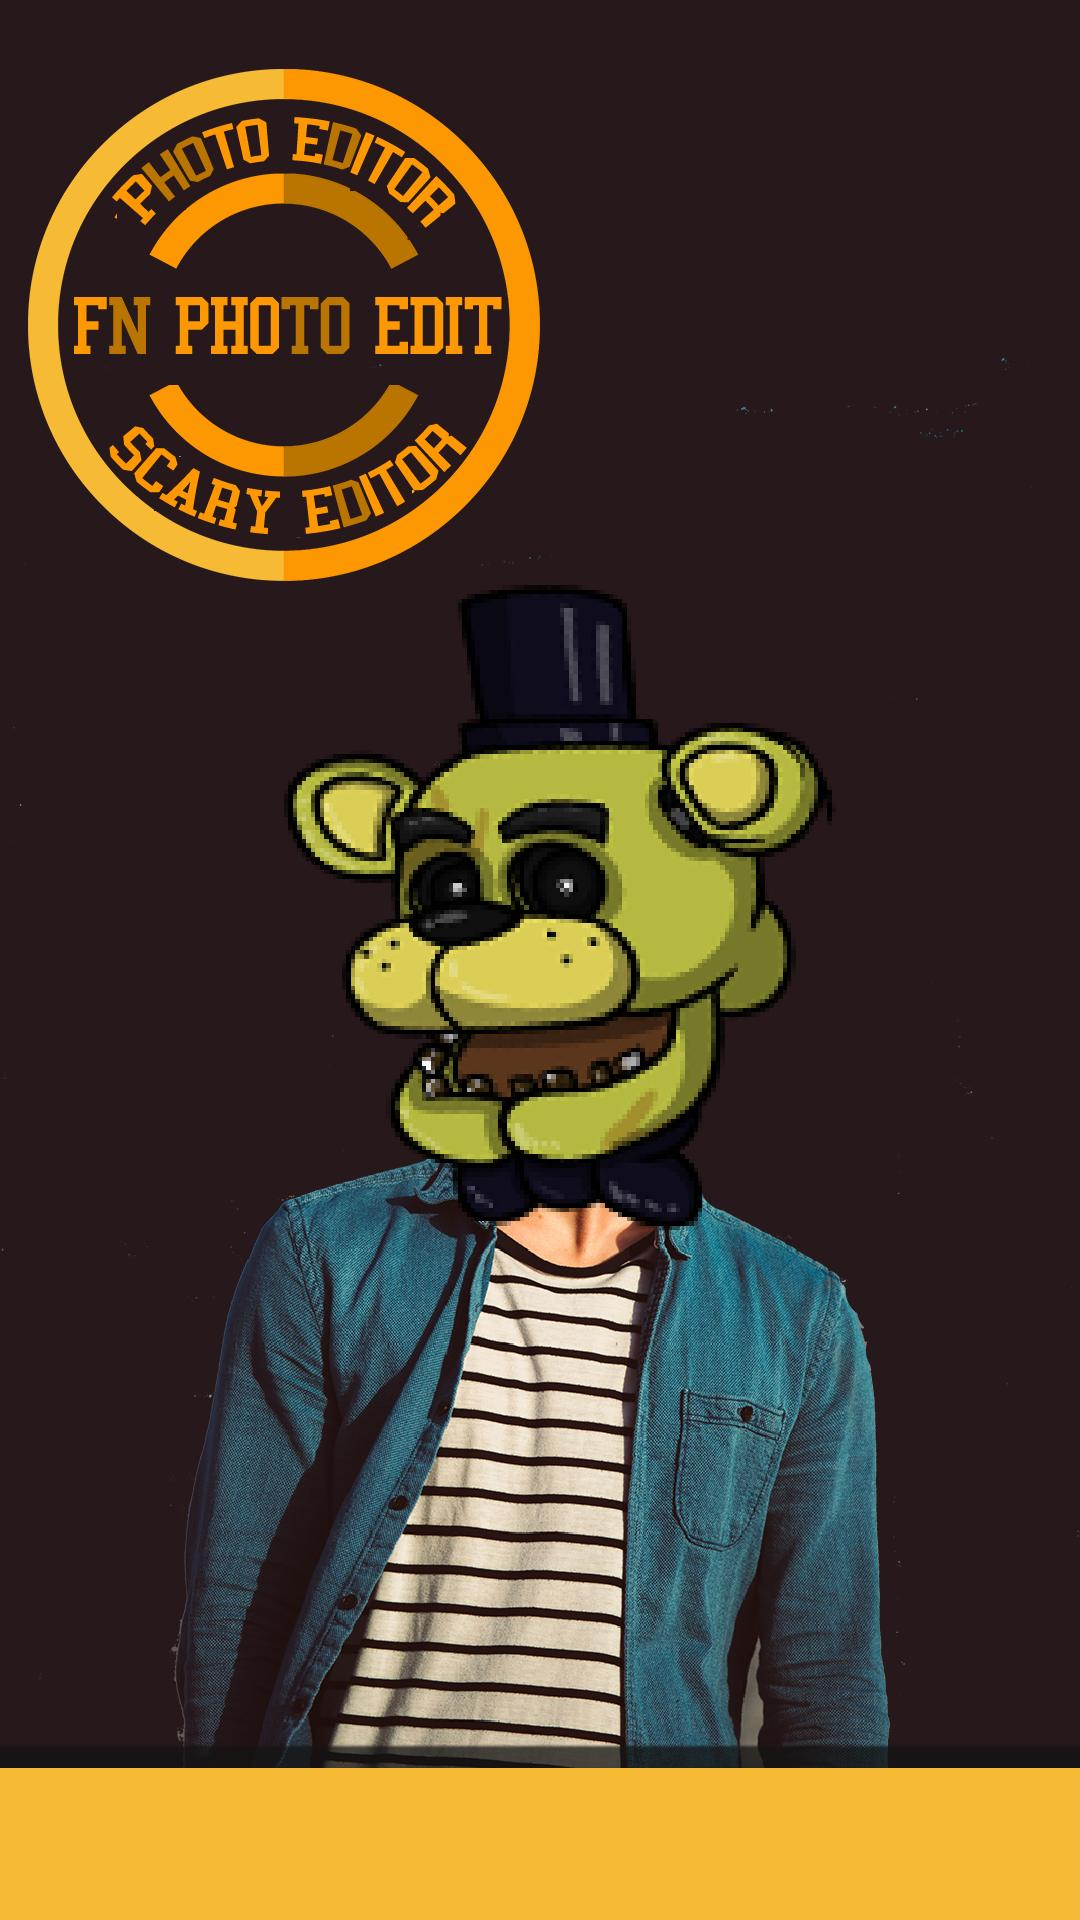 FN Photo Editor for FNAF for Android - APK Download